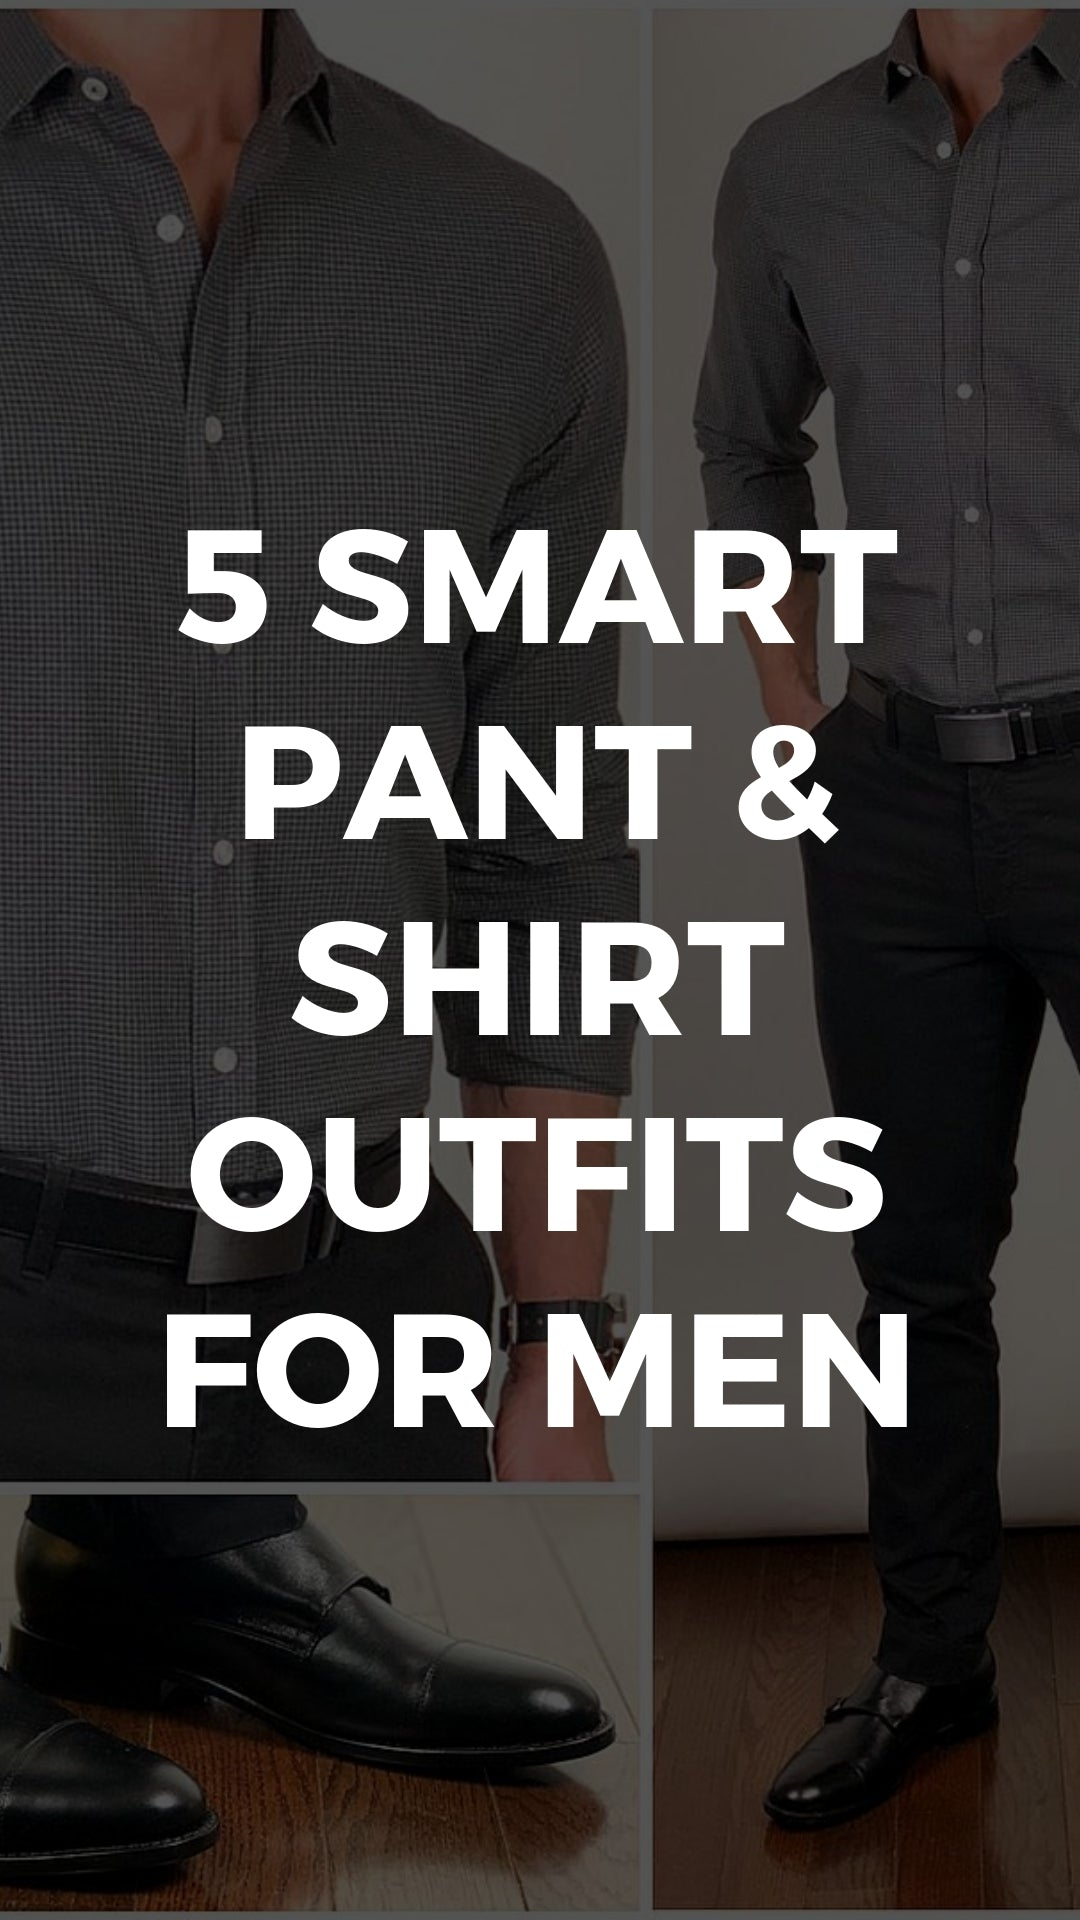 Formal outfits for men. #formal #outfits #mensfashion #fashiontips